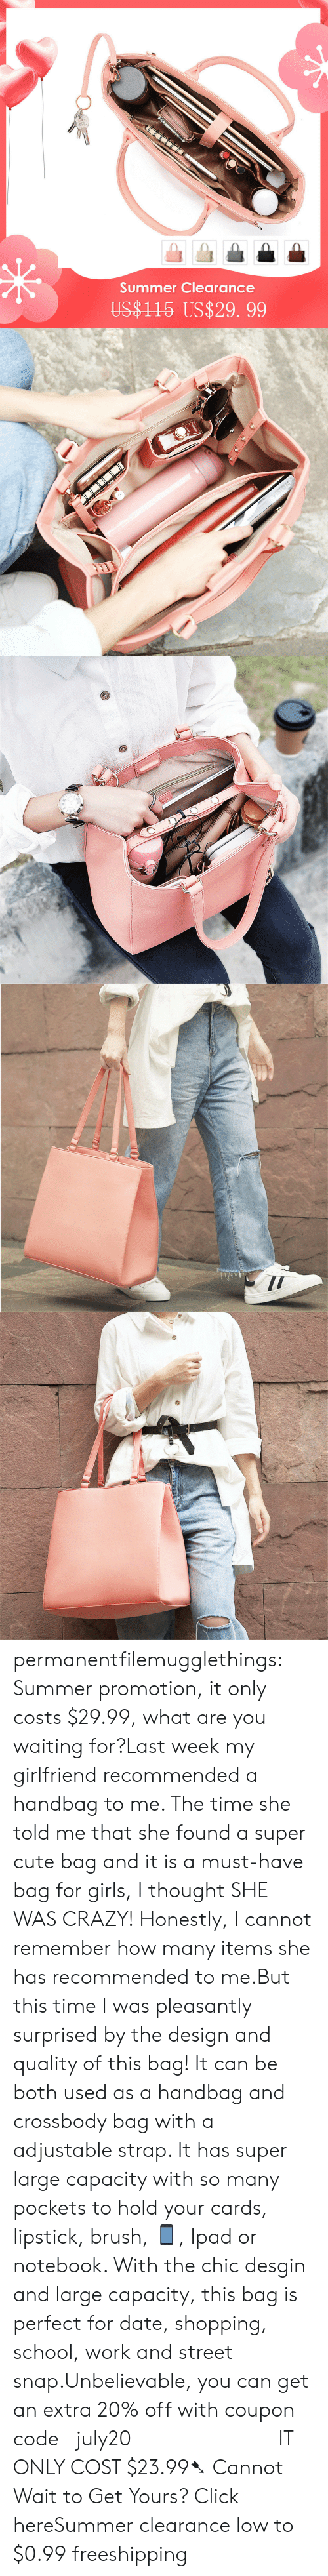 Your Cards: Summer Clearance  US$1 15 US$29. 99 permanentfilemugglethings:  Summer promotion, it only costs $29.99, what are you waiting for?Last week my girlfriend recommended a handbag to me. The time she told me that she found a super cute bag and it is a must-have bag for girls, I thought SHE WAS CRAZY! Honestly, I cannot remember how many items she has recommended to me.But this time I was pleasantly surprised by the design and quality of this bag! It can be both used as a handbag and crossbody bag with a adjustable strap. It has super large capacity with so many pockets to hold your cards, lipstick, brush, 📱, Ipad or notebook. With the chic desgin and large capacity, this bag is perfect for date, shopping, school, work and street snap.Unbelievable, you can get an extra 20% off with coupon code :july20             IT ONLY COST $23.99➷ Cannot Wait to Get Yours? Click hereSummer clearance low to $0.99  freeshipping